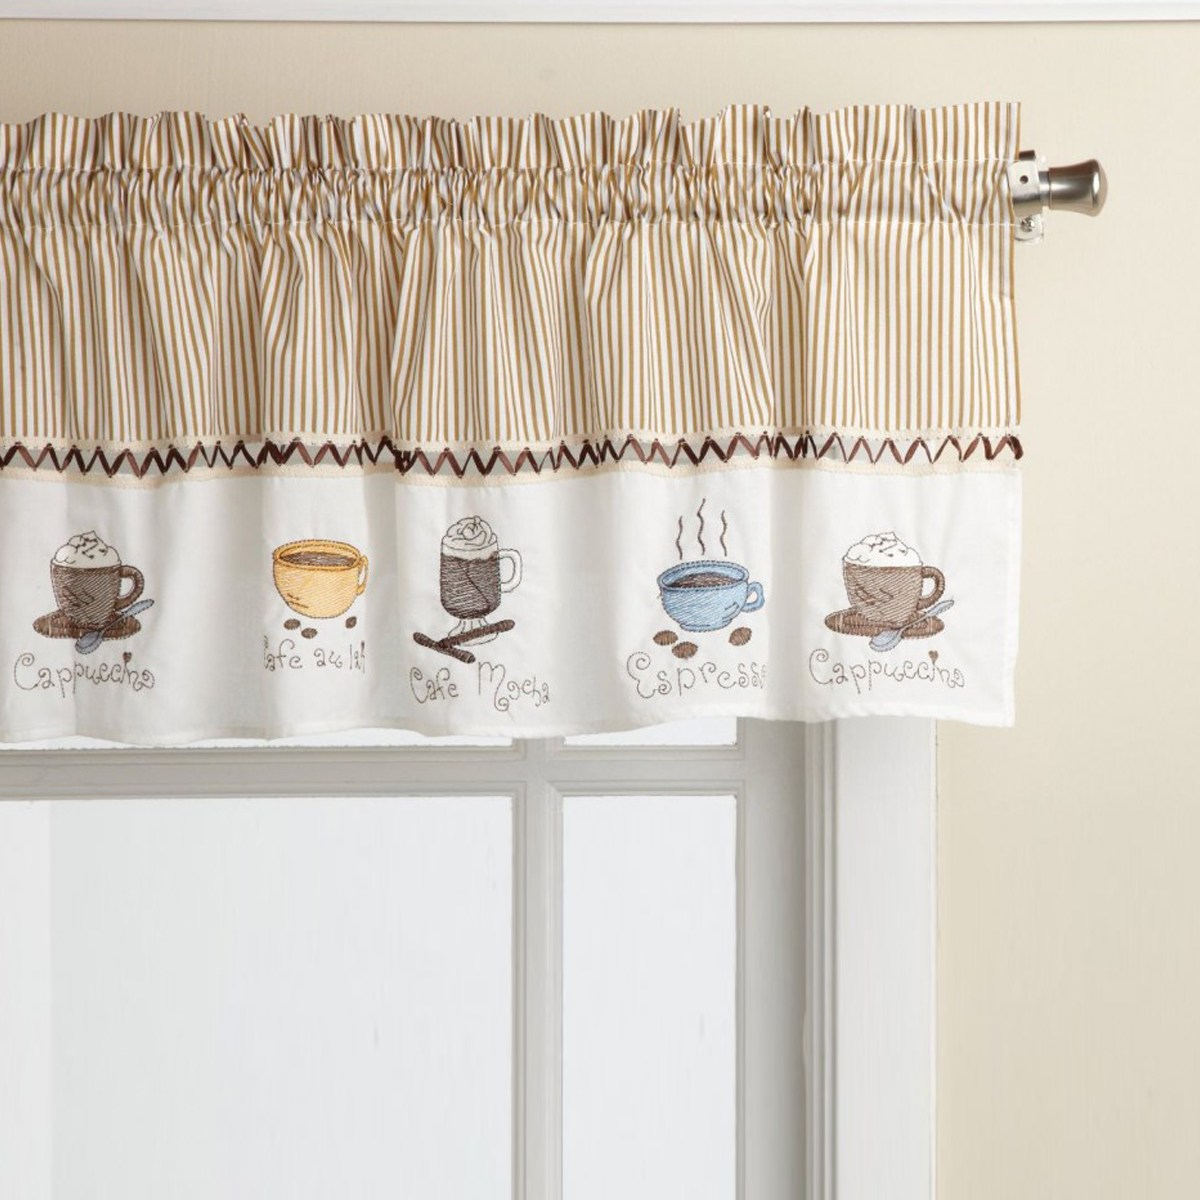 Bed Bath N More Favorite Coffee Drinks Embroidered Window Treatments Valance And Tiers Intended For Coffee Drinks Embroidered Window Valances And Tiers (View 2 of 20)